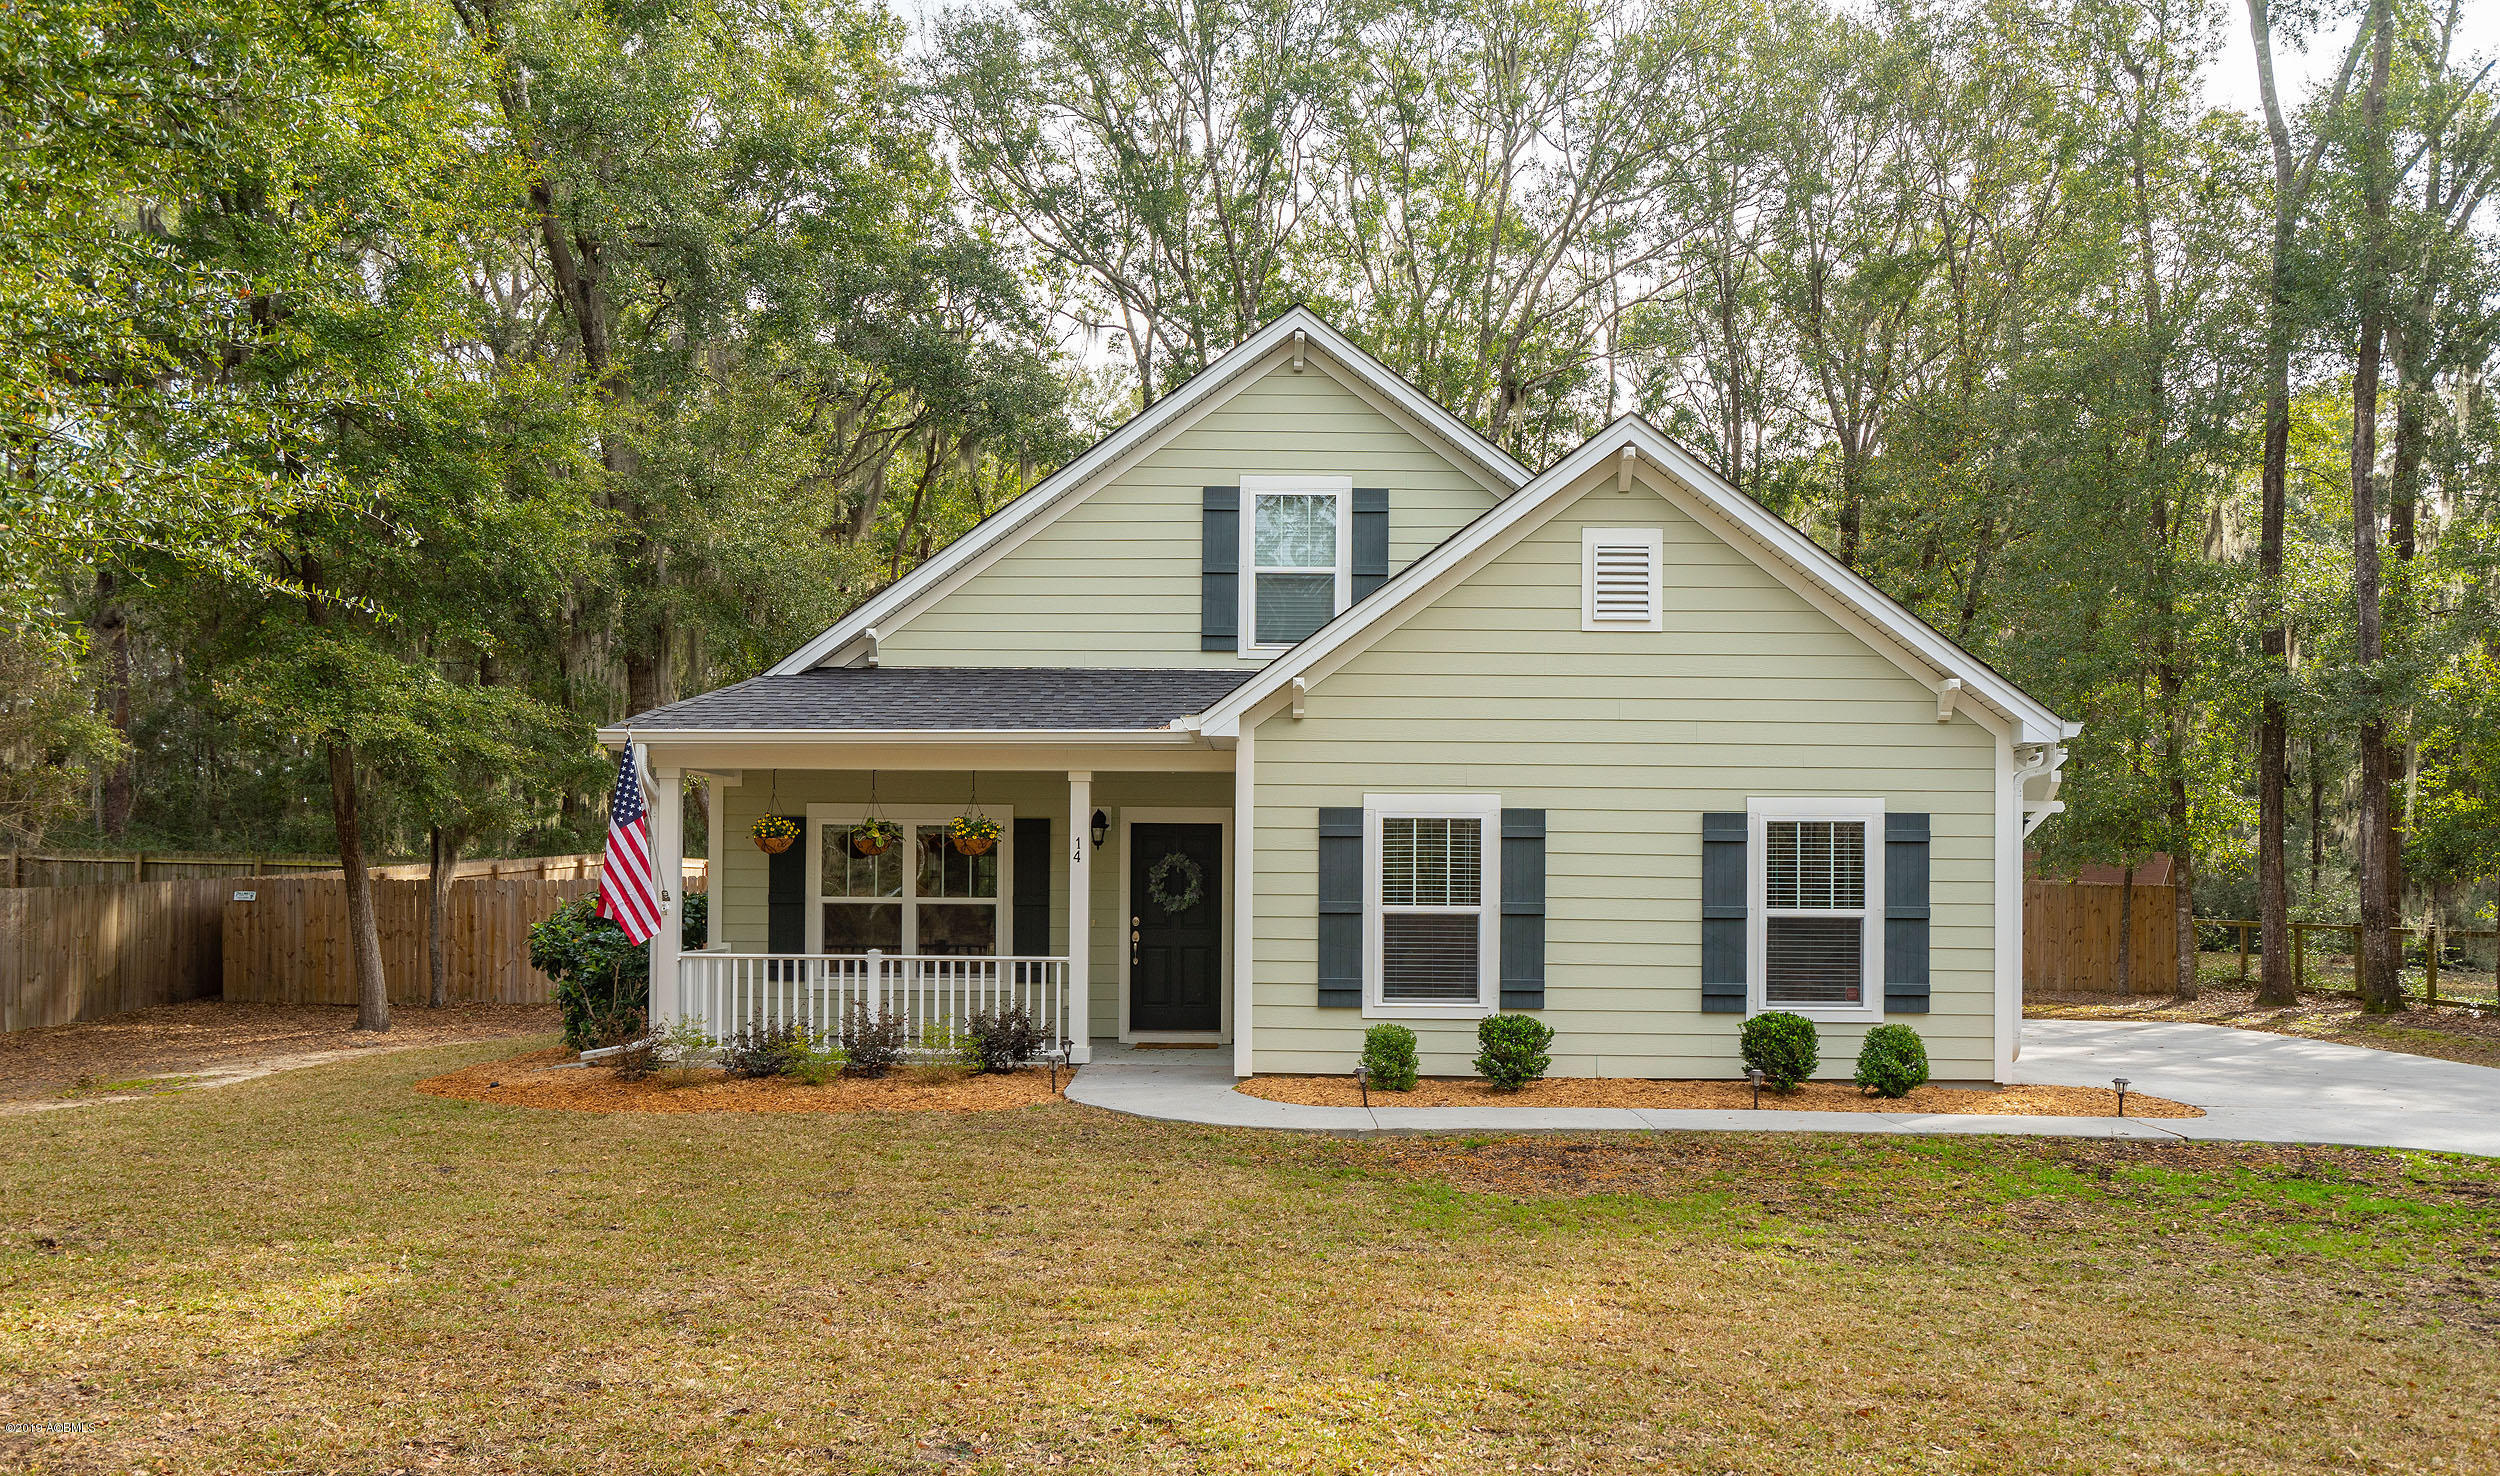 Photo of 14 Chinaback Drive, Beaufort, SC 29907